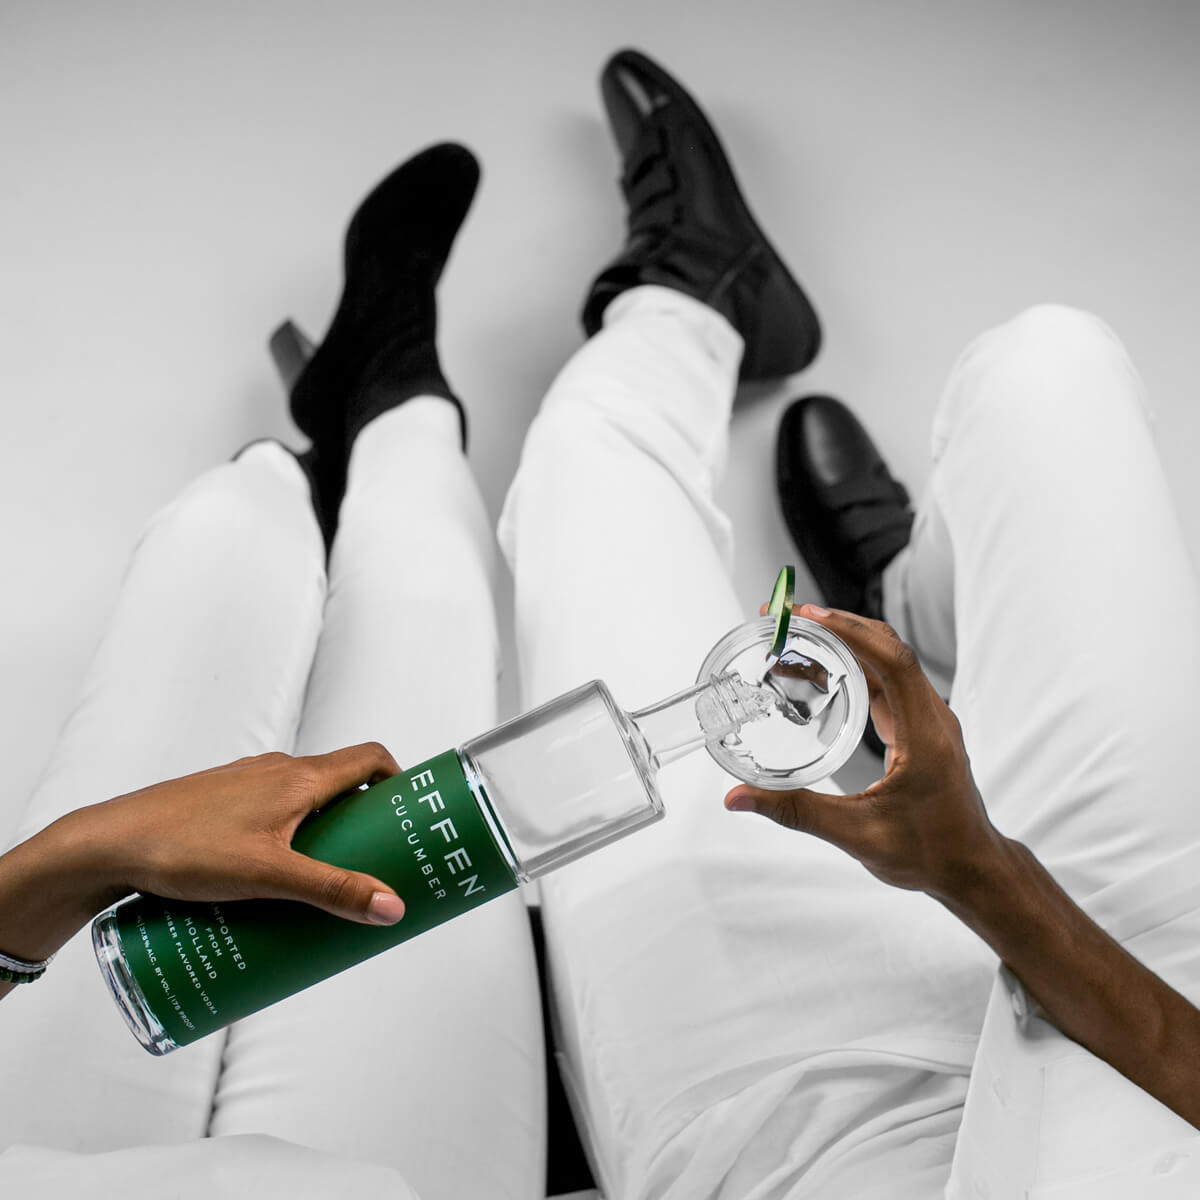 Cool as cucumber with EFFEN Cucumber Vodka. Be yourself!